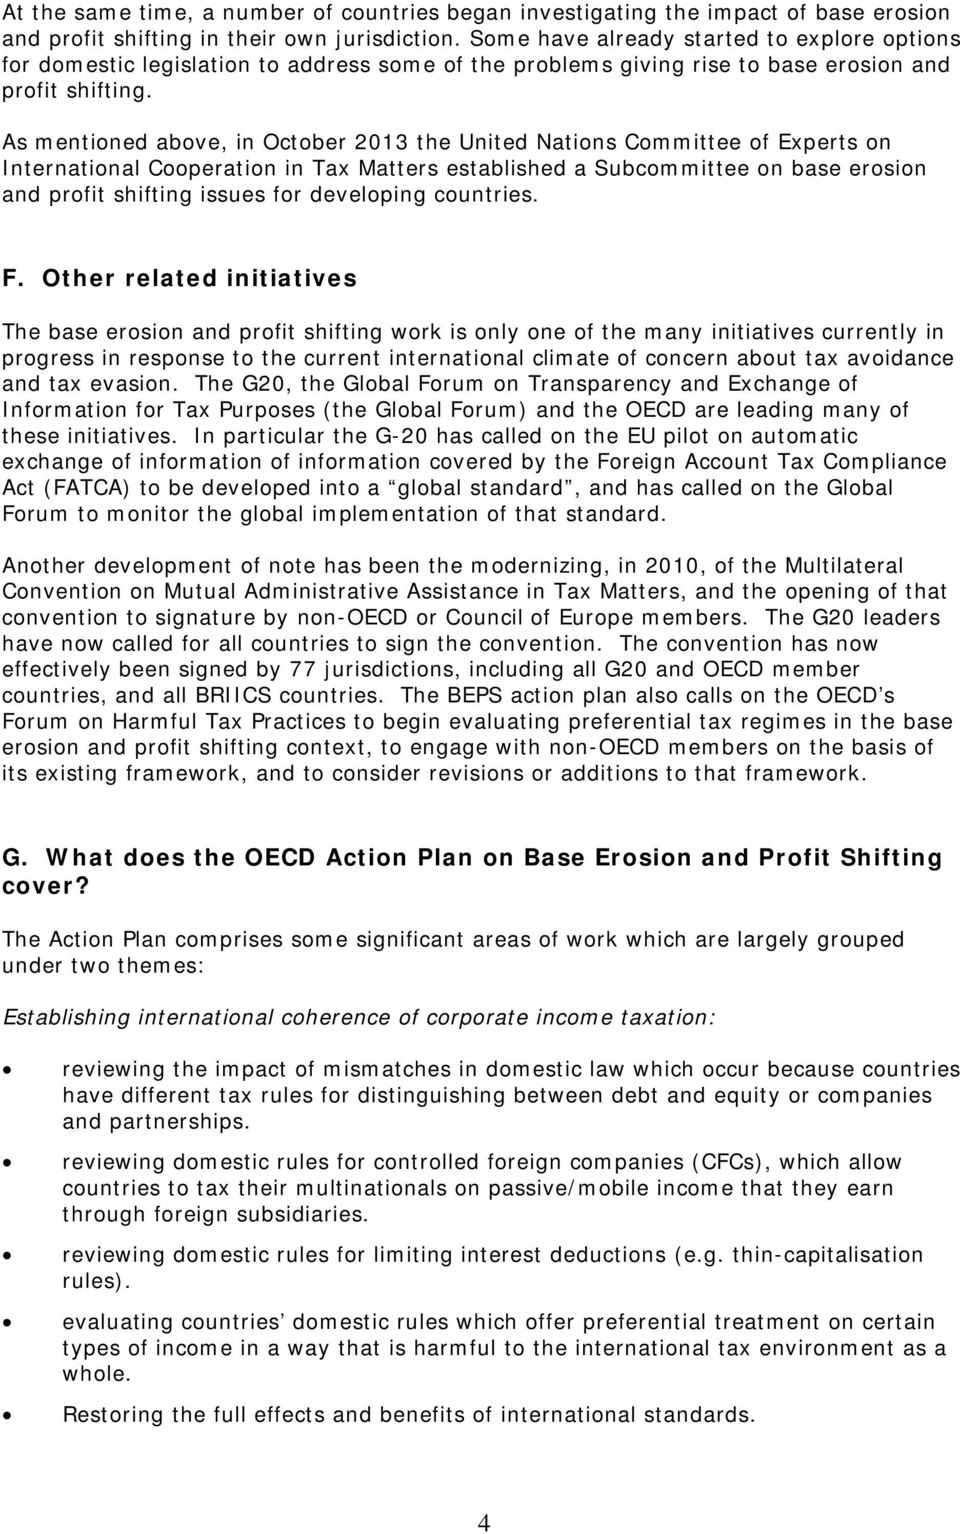 As mentioned above, in October 2013 the United Nations Committee of Experts on International Cooperation in Tax Matters established a Subcommittee on base erosion and profit shifting issues for